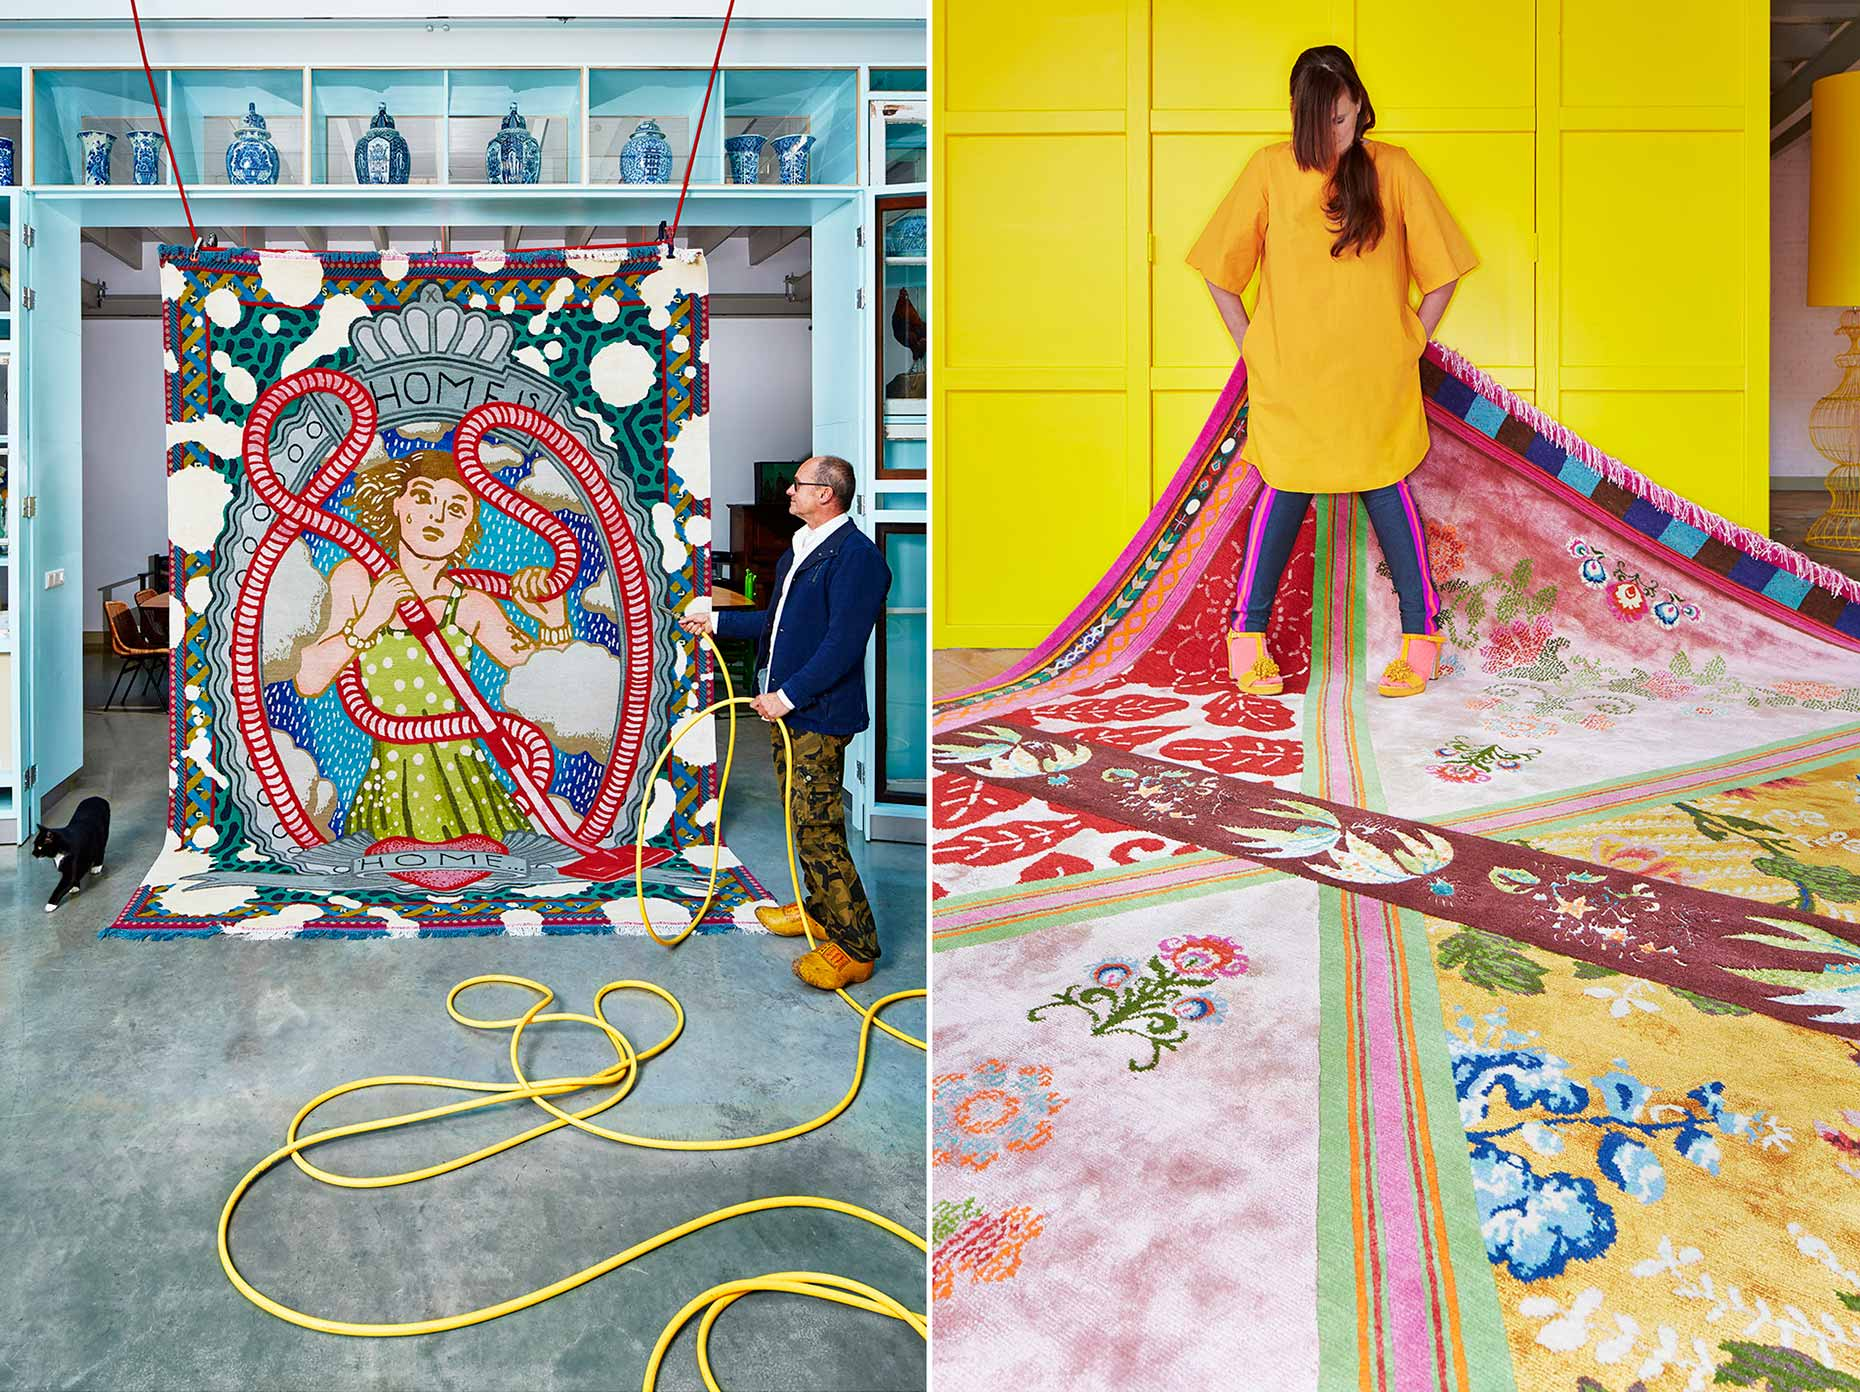 Dutch designers Petra Janssen and edwin Vollebergh of Studio Boot for Ice International carpets